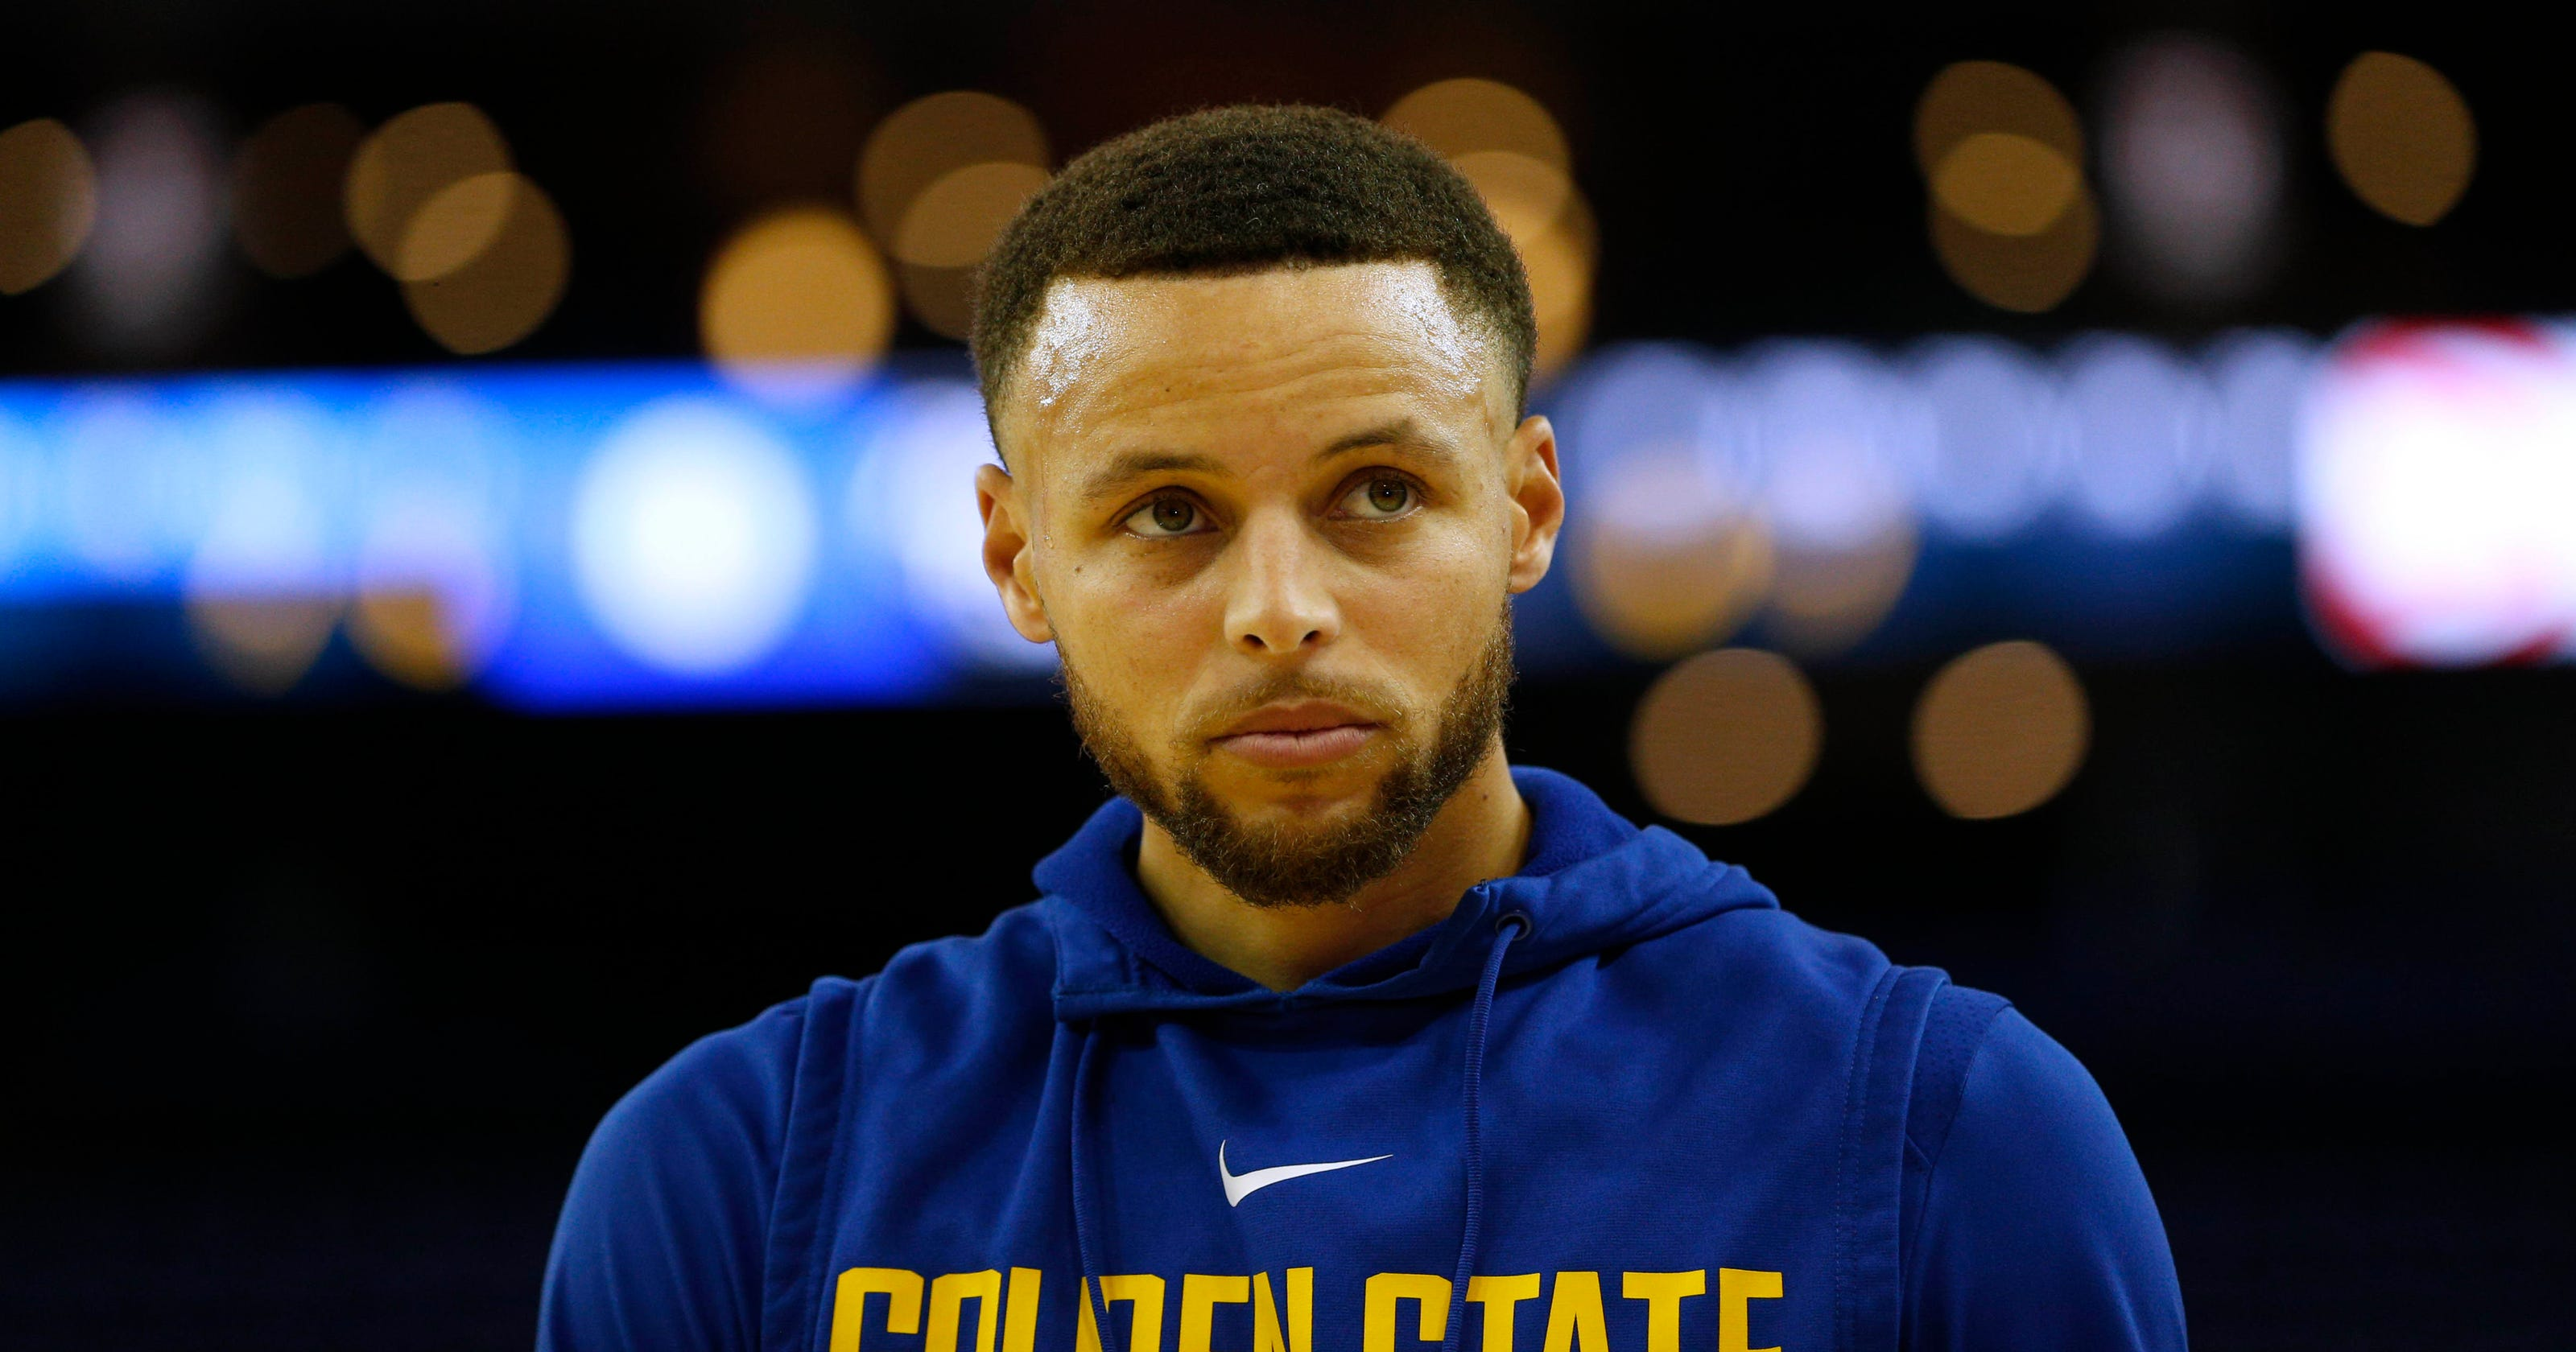 Steph Curry s knee injury a problem for Warriors with playoffs nearing a428c9e91